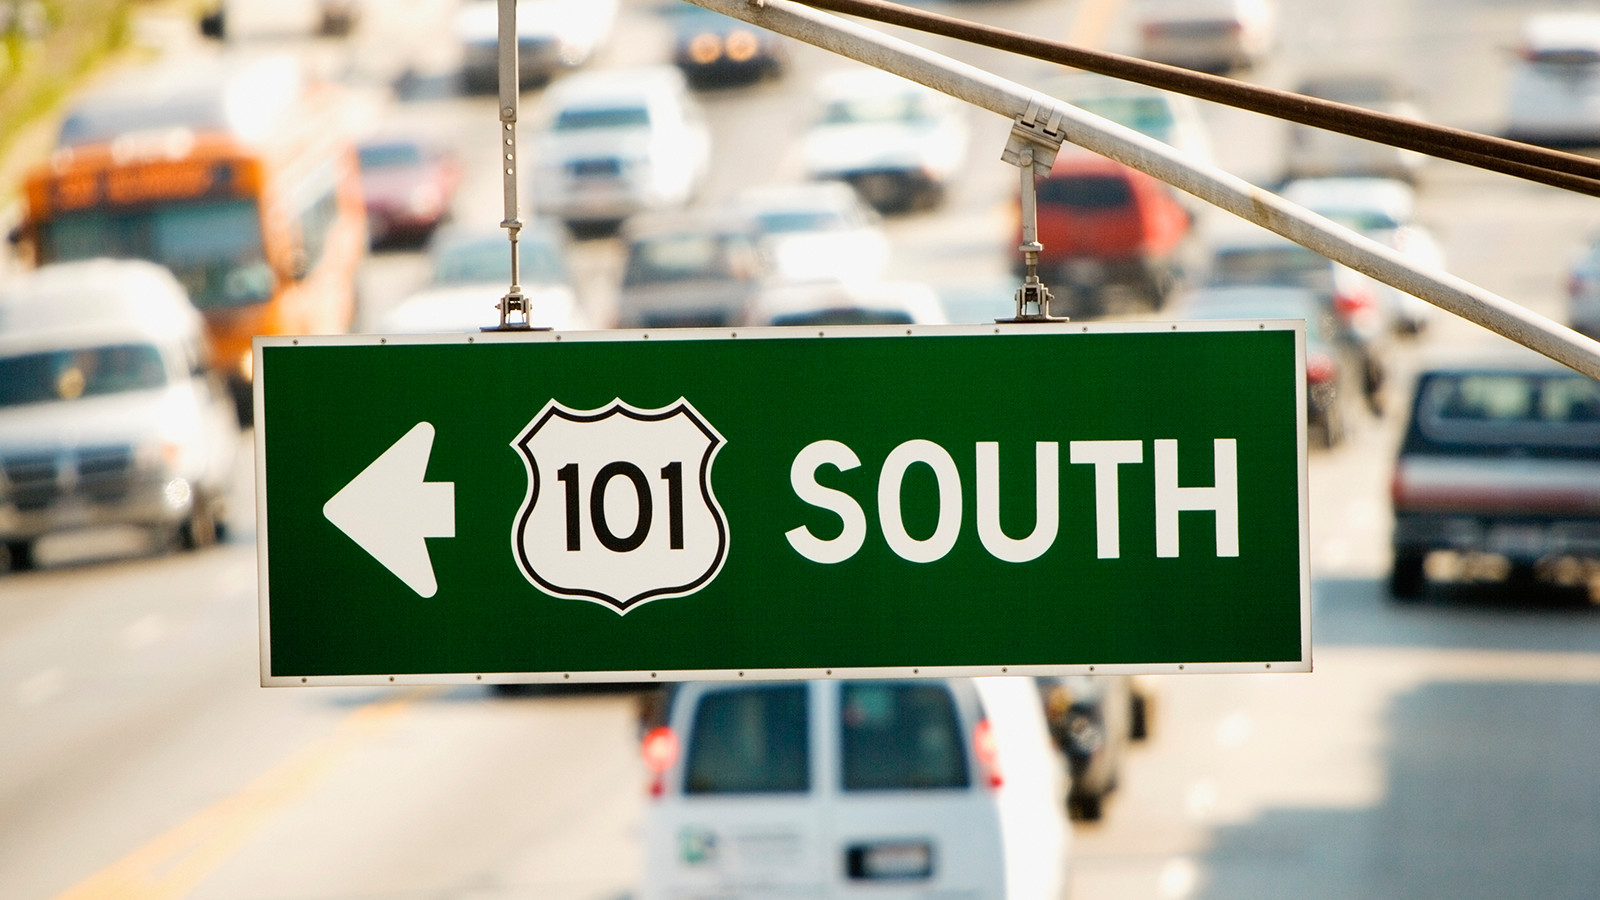 101 South Sign